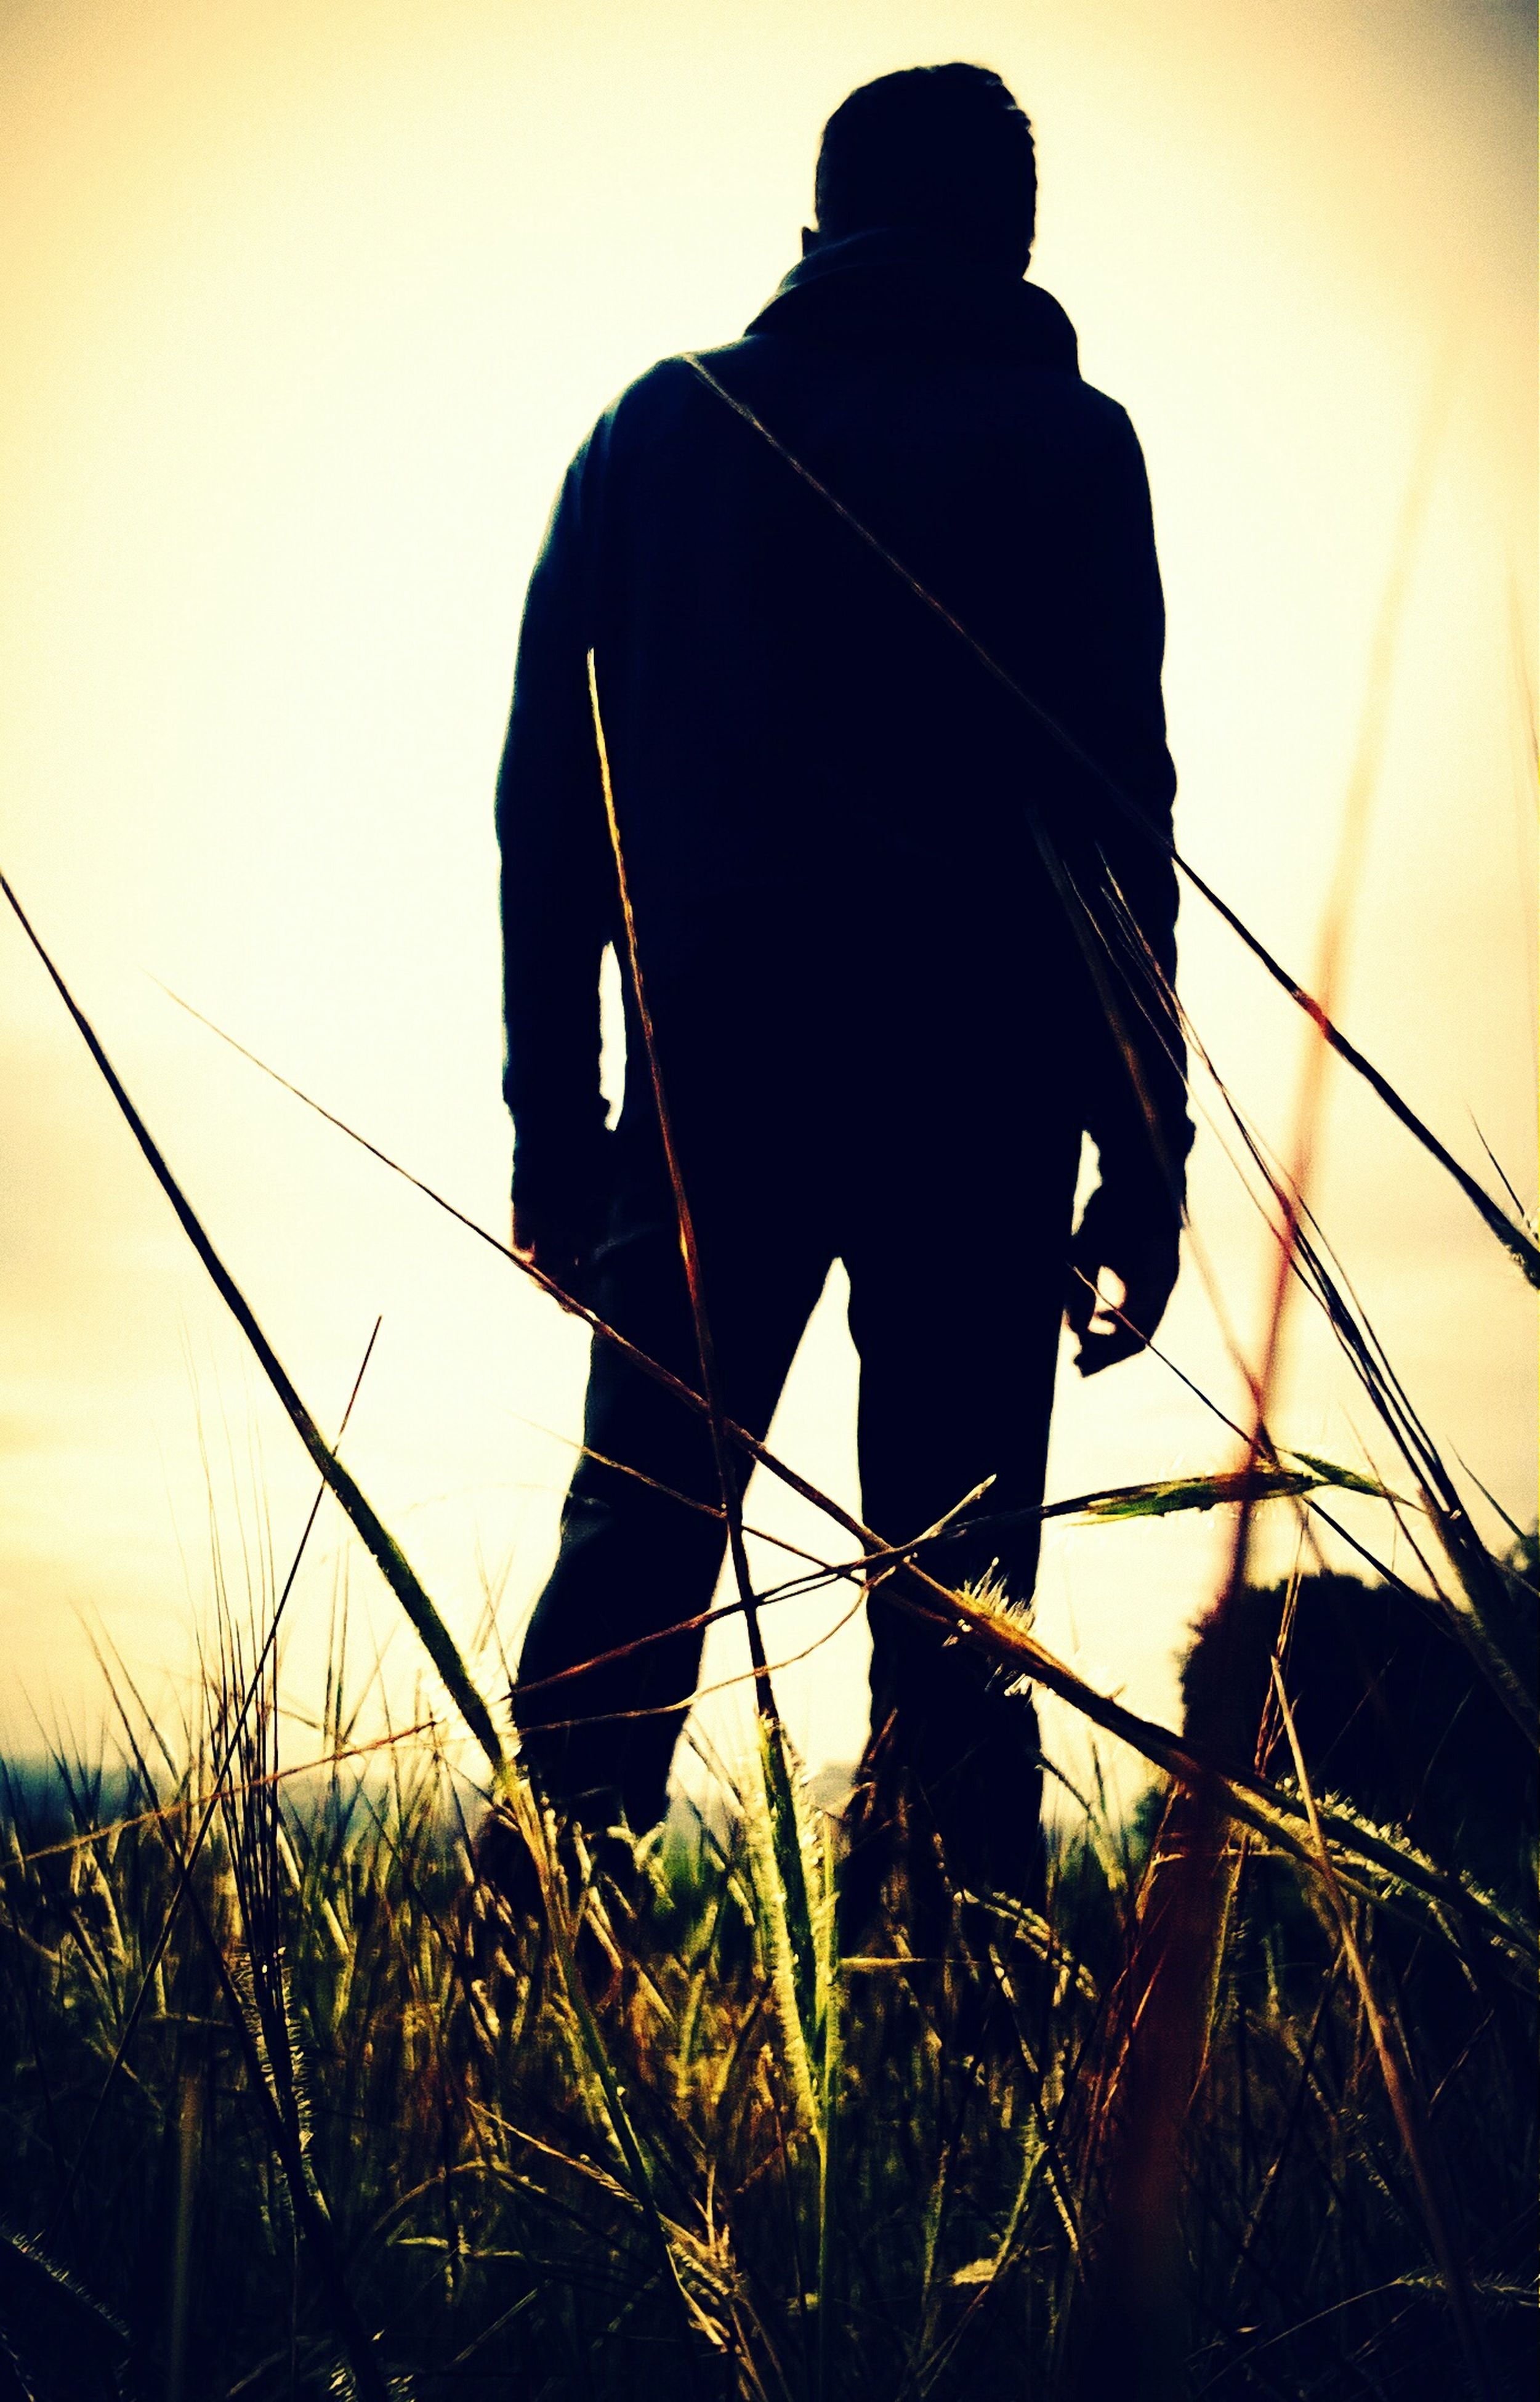 silhouette, one person, low angle view, outdoors, leisure activity, men, real people, people, one man only, adults only, only men, adult, day